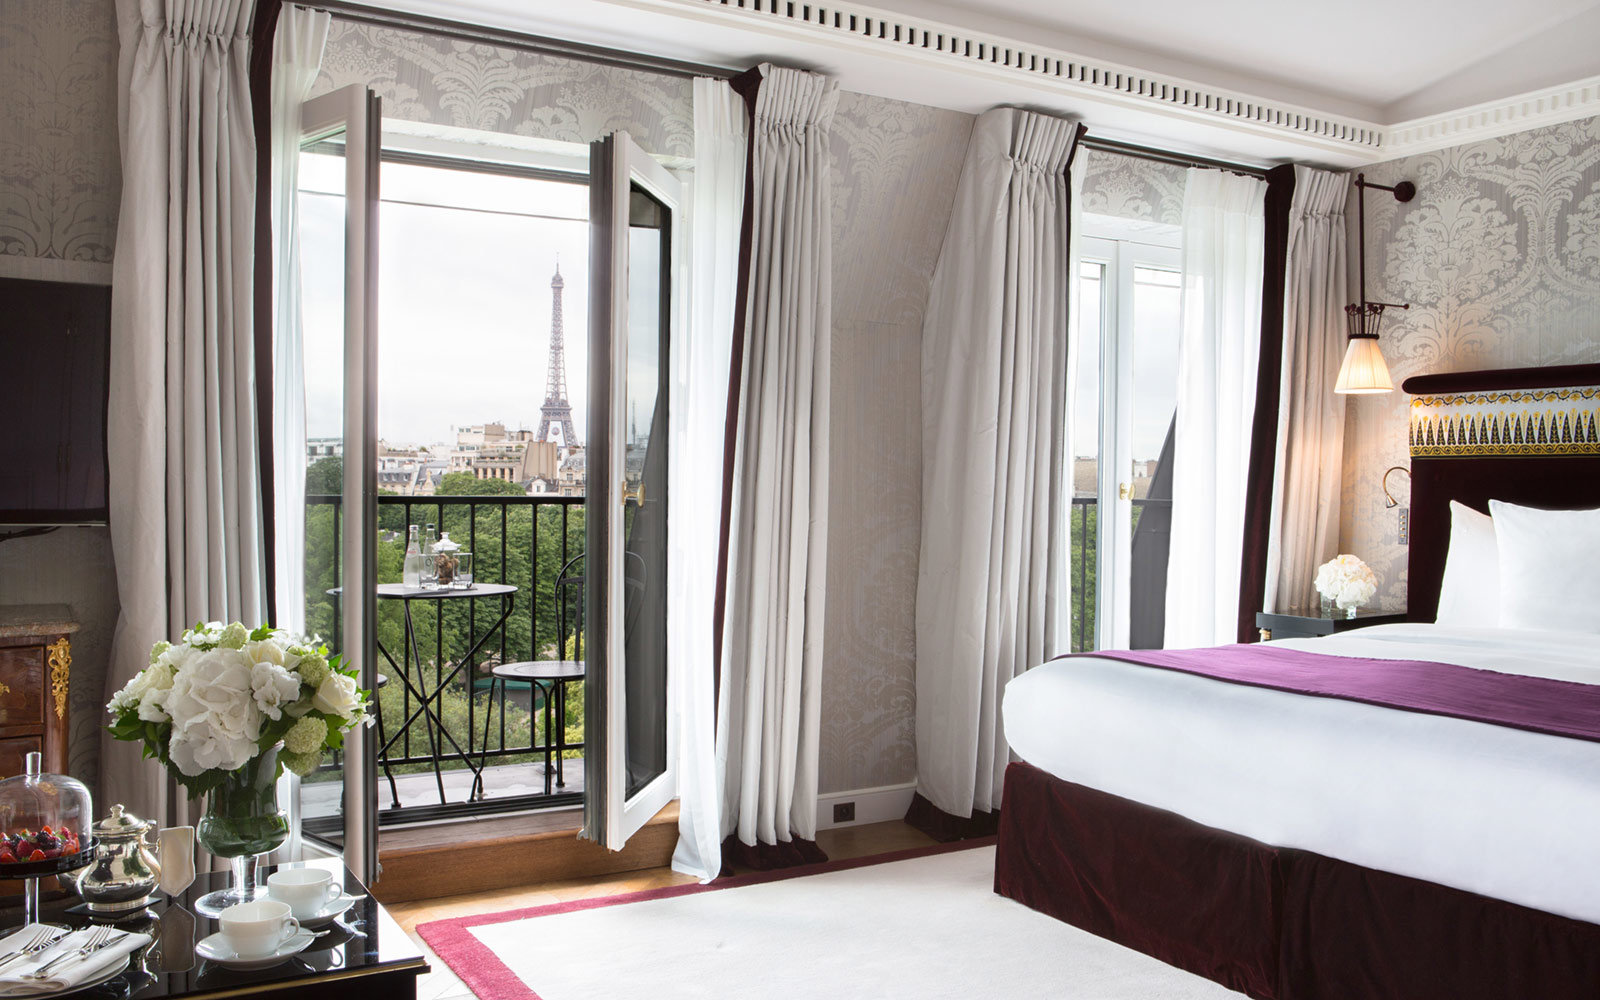 la-reserve-paris-hotel-spa-and-apartments-lead-EUROPEHTLWB18.jpg